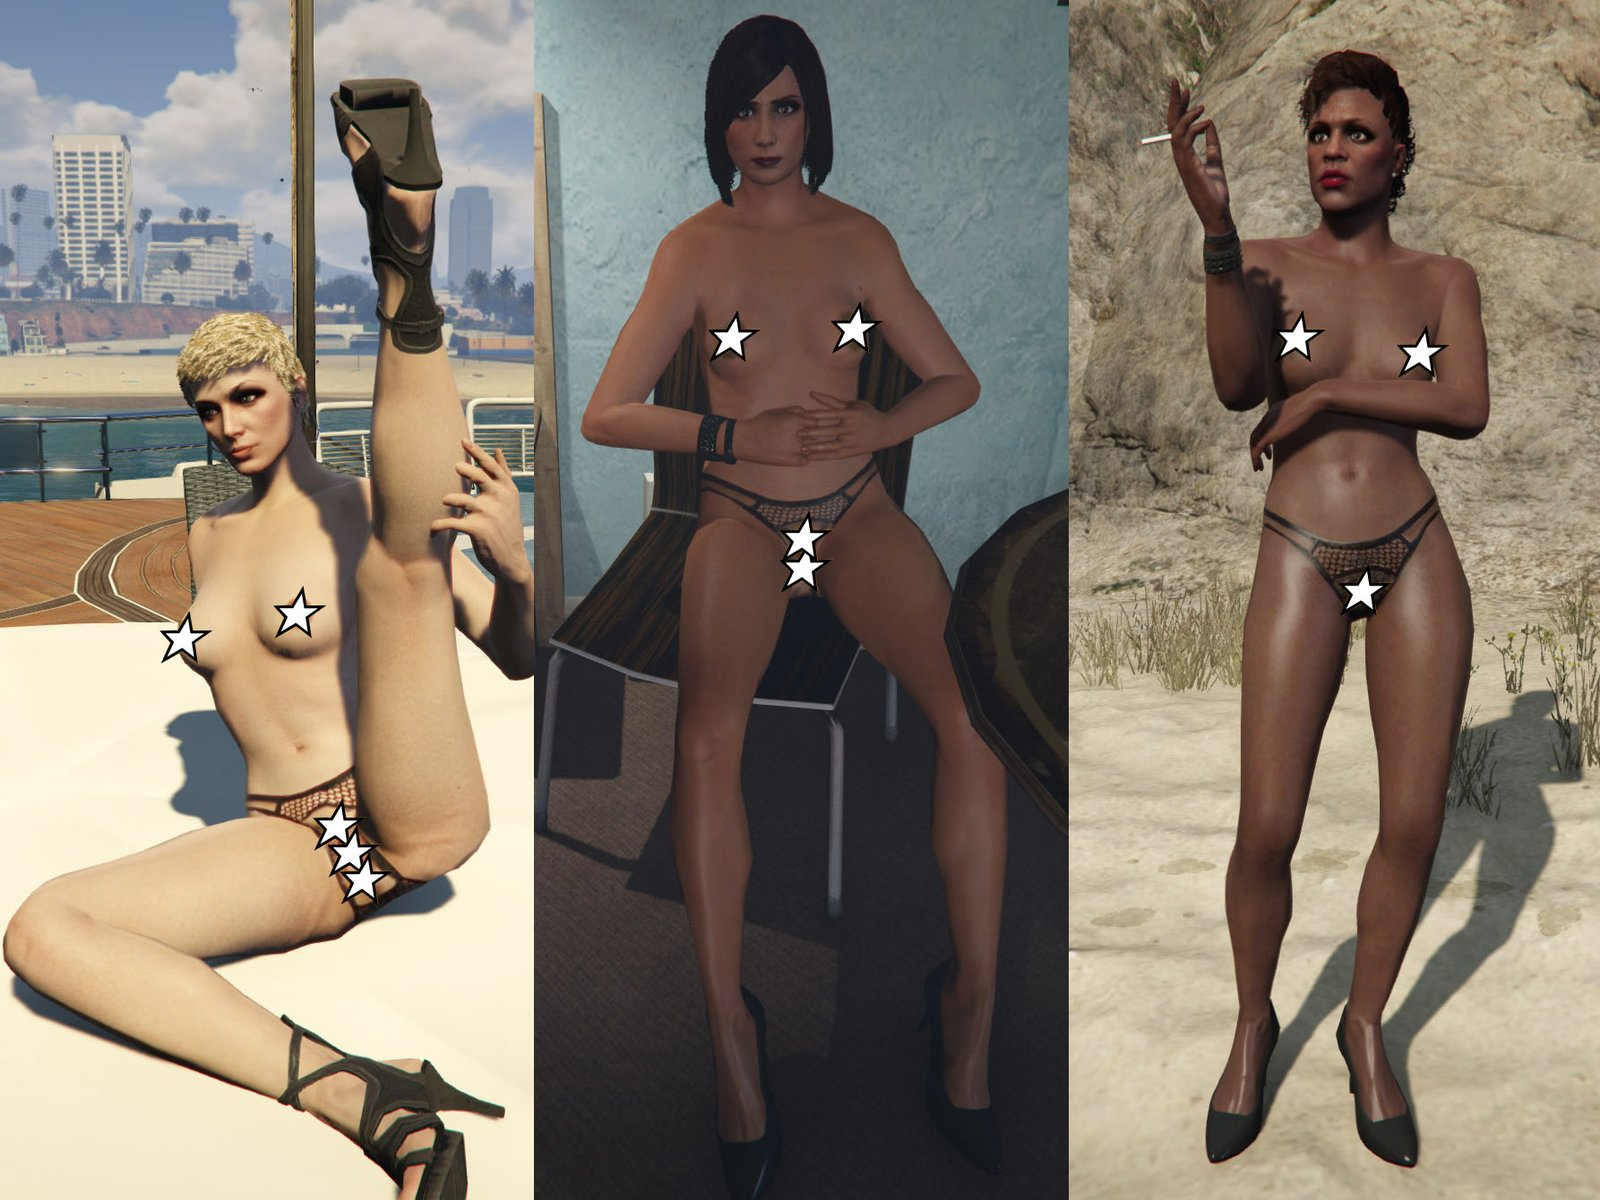 Lea naked girls in grand theft auto voyeur